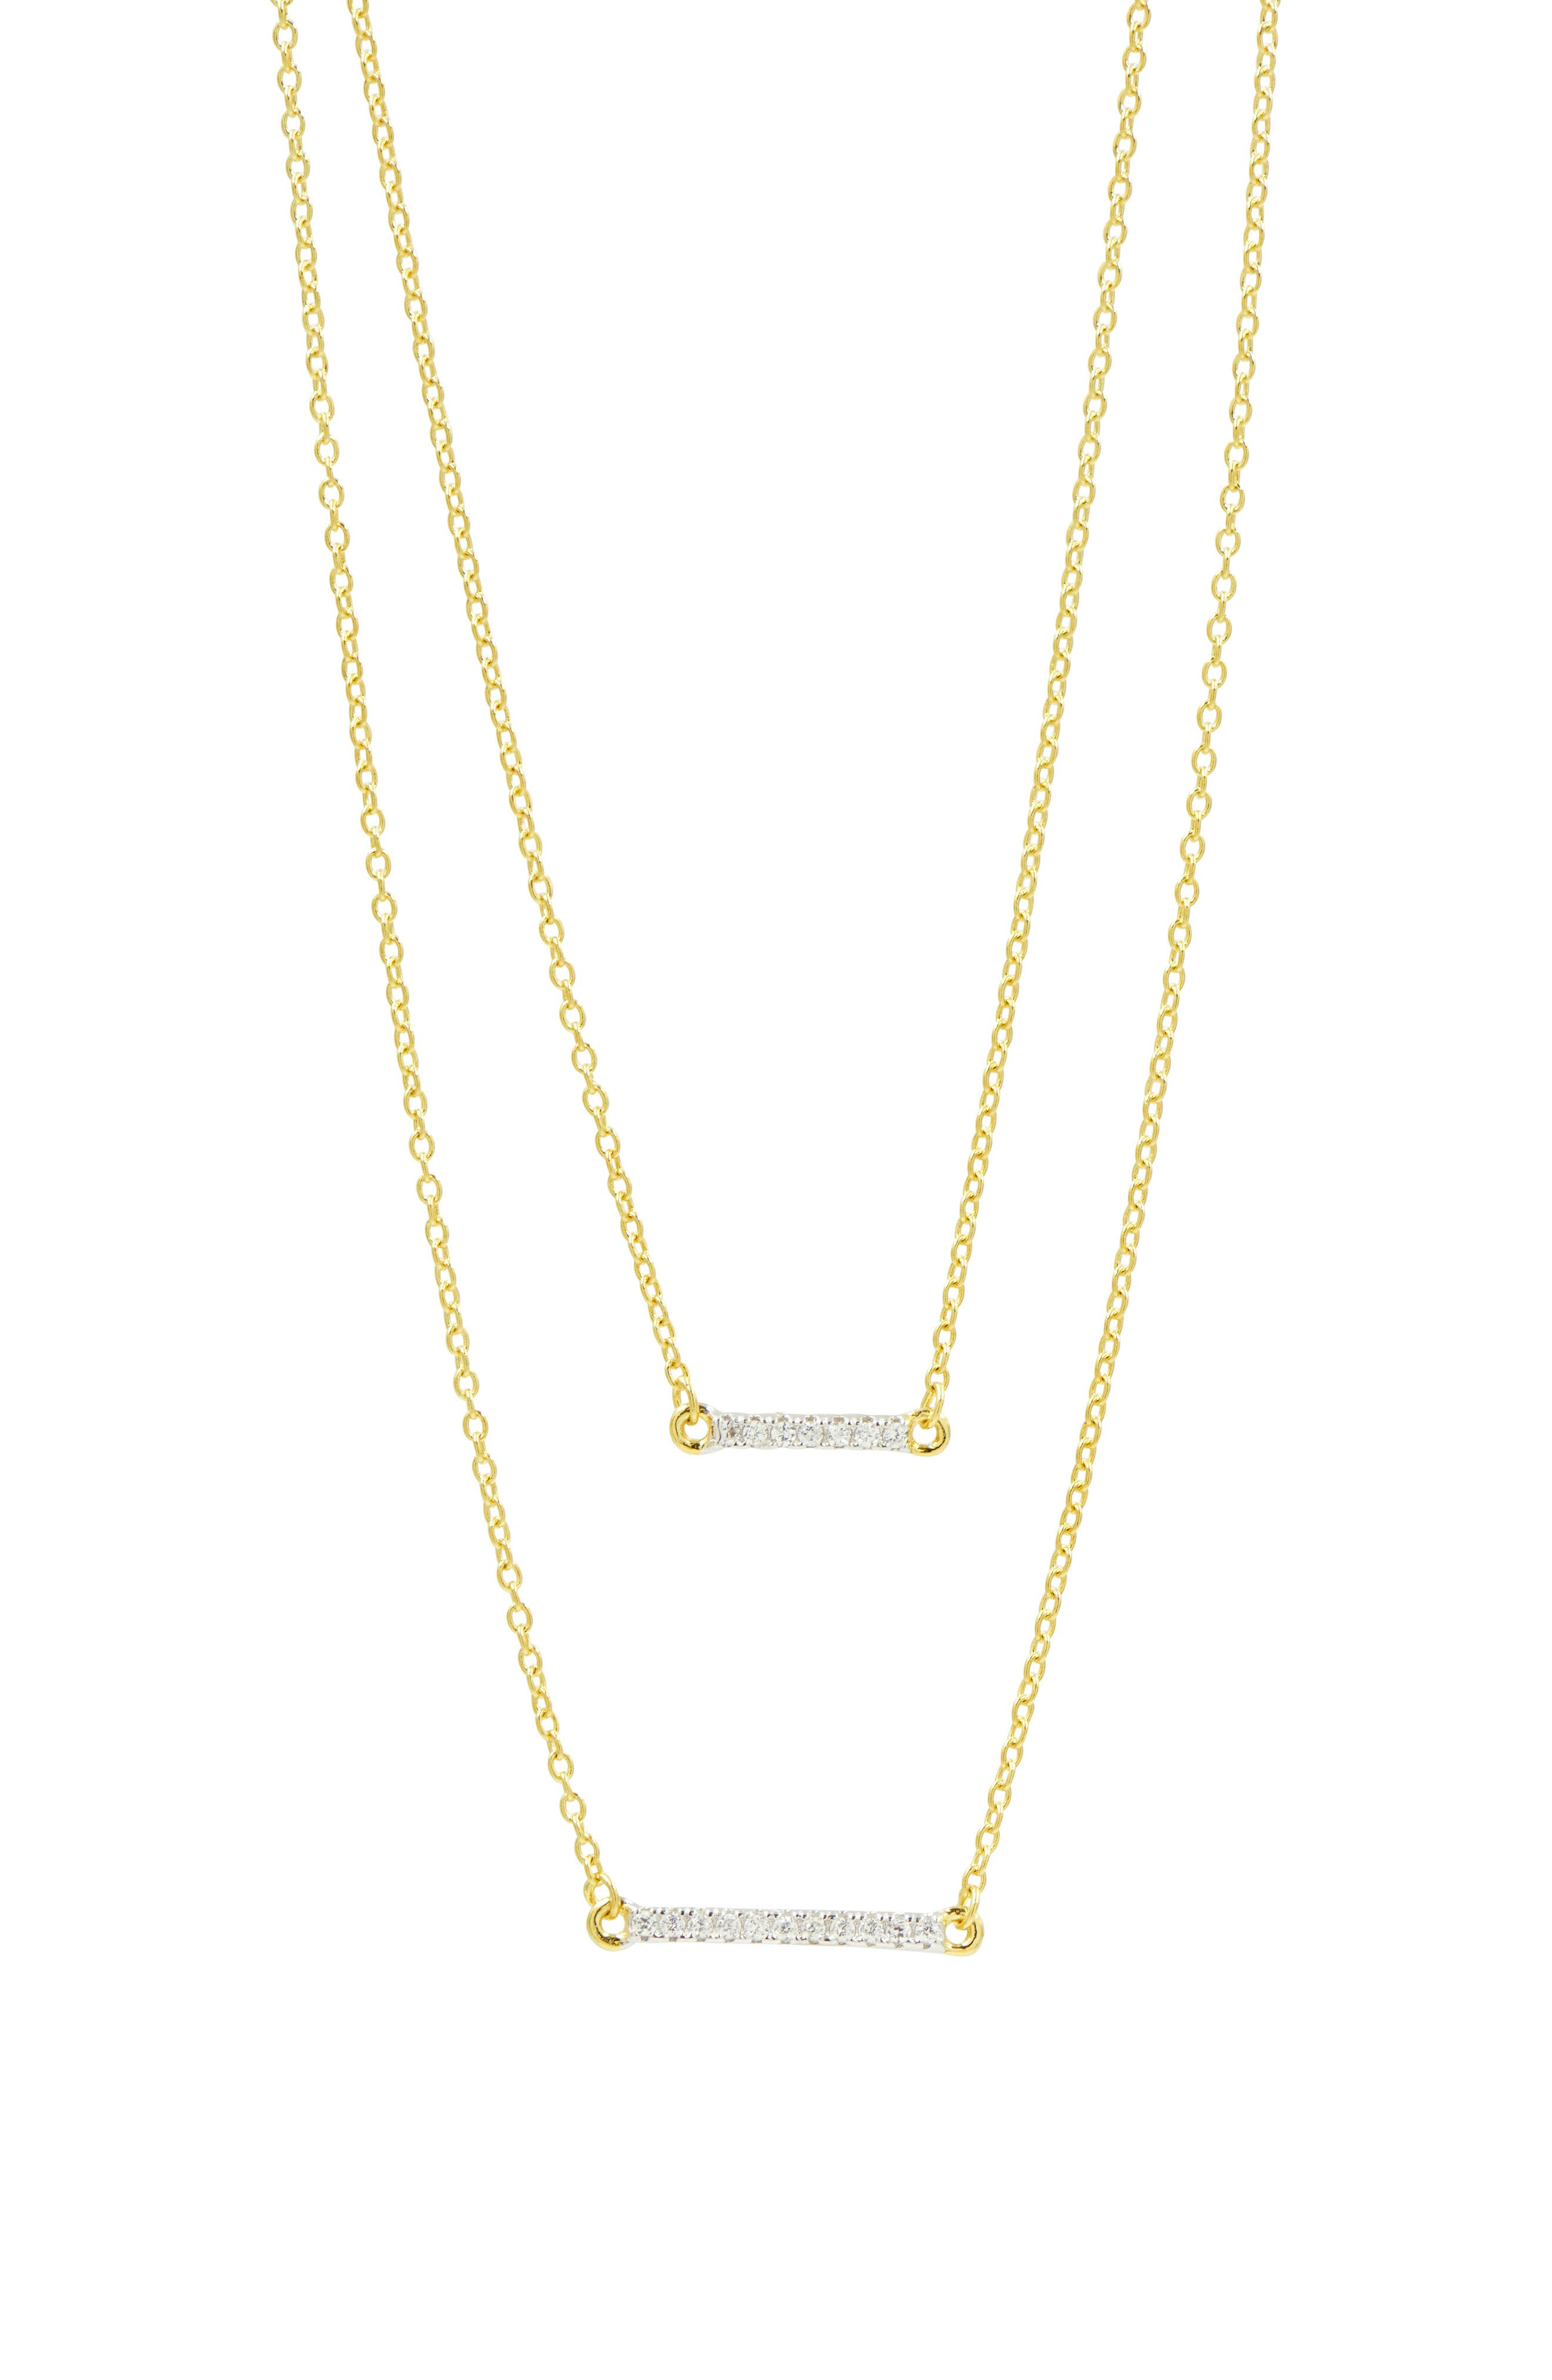 Radiance Double Pendant Necklace,                             Main thumbnail 1, color,                             Gold/ Silver